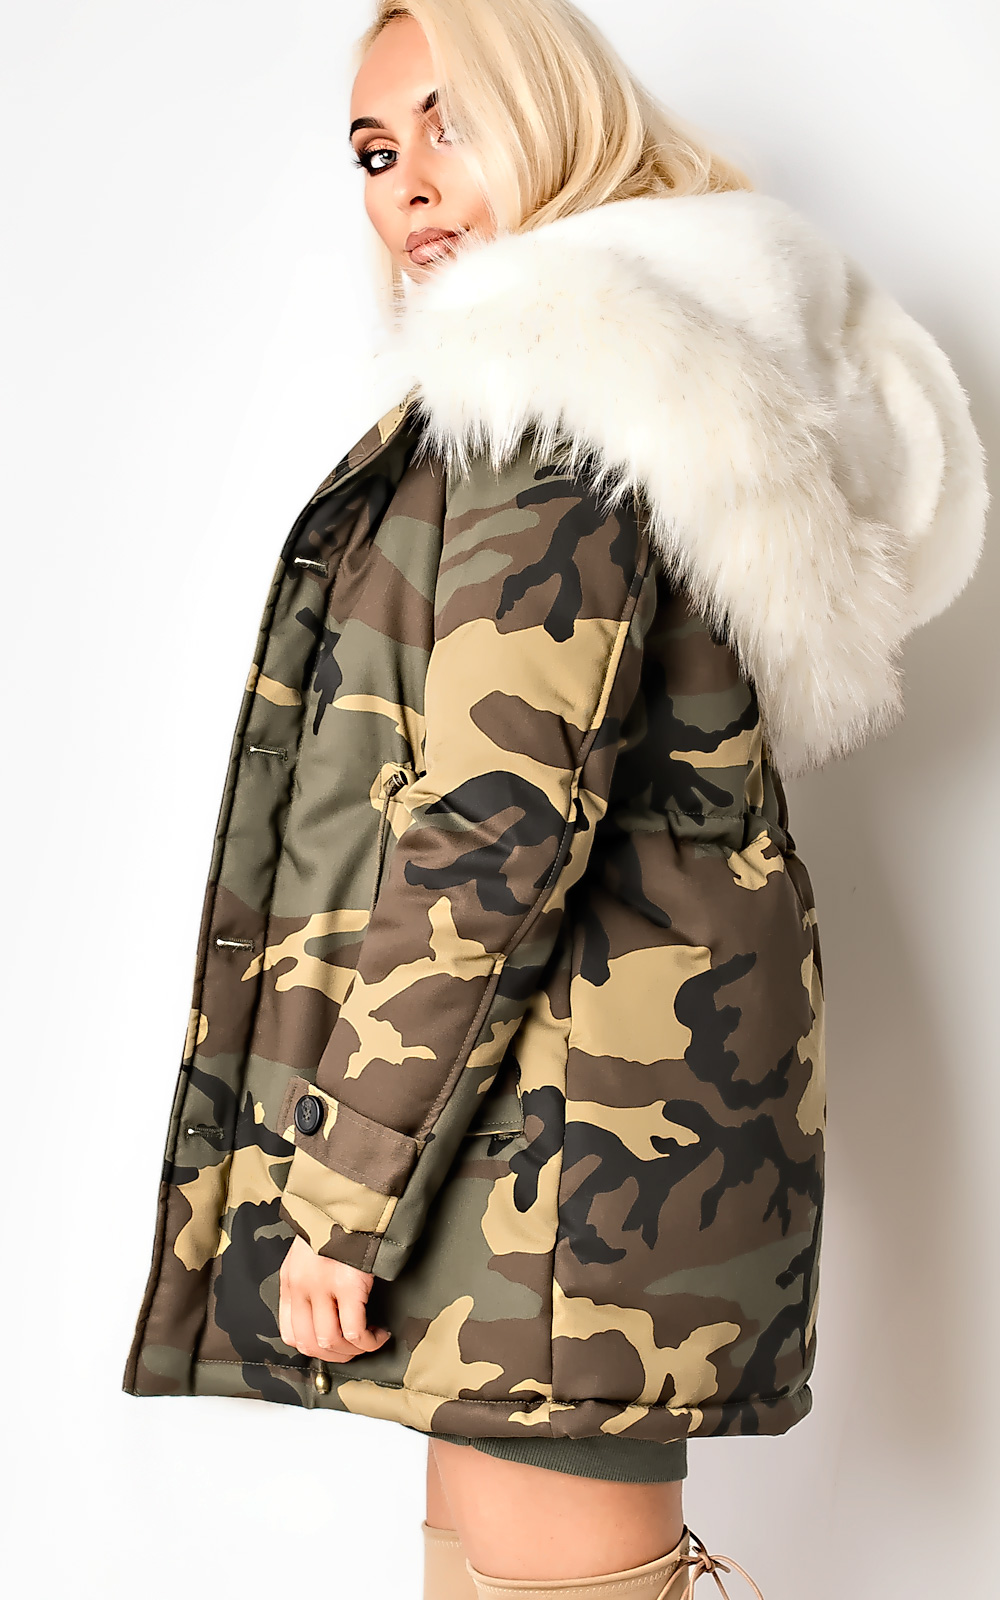 GJ Fur Coat Anorak (with Hoodie). A long sleeve parka jacket perfect for staying warm in the chilly season of the year. The coat features a parka length so you have the optimal amount of coverage.